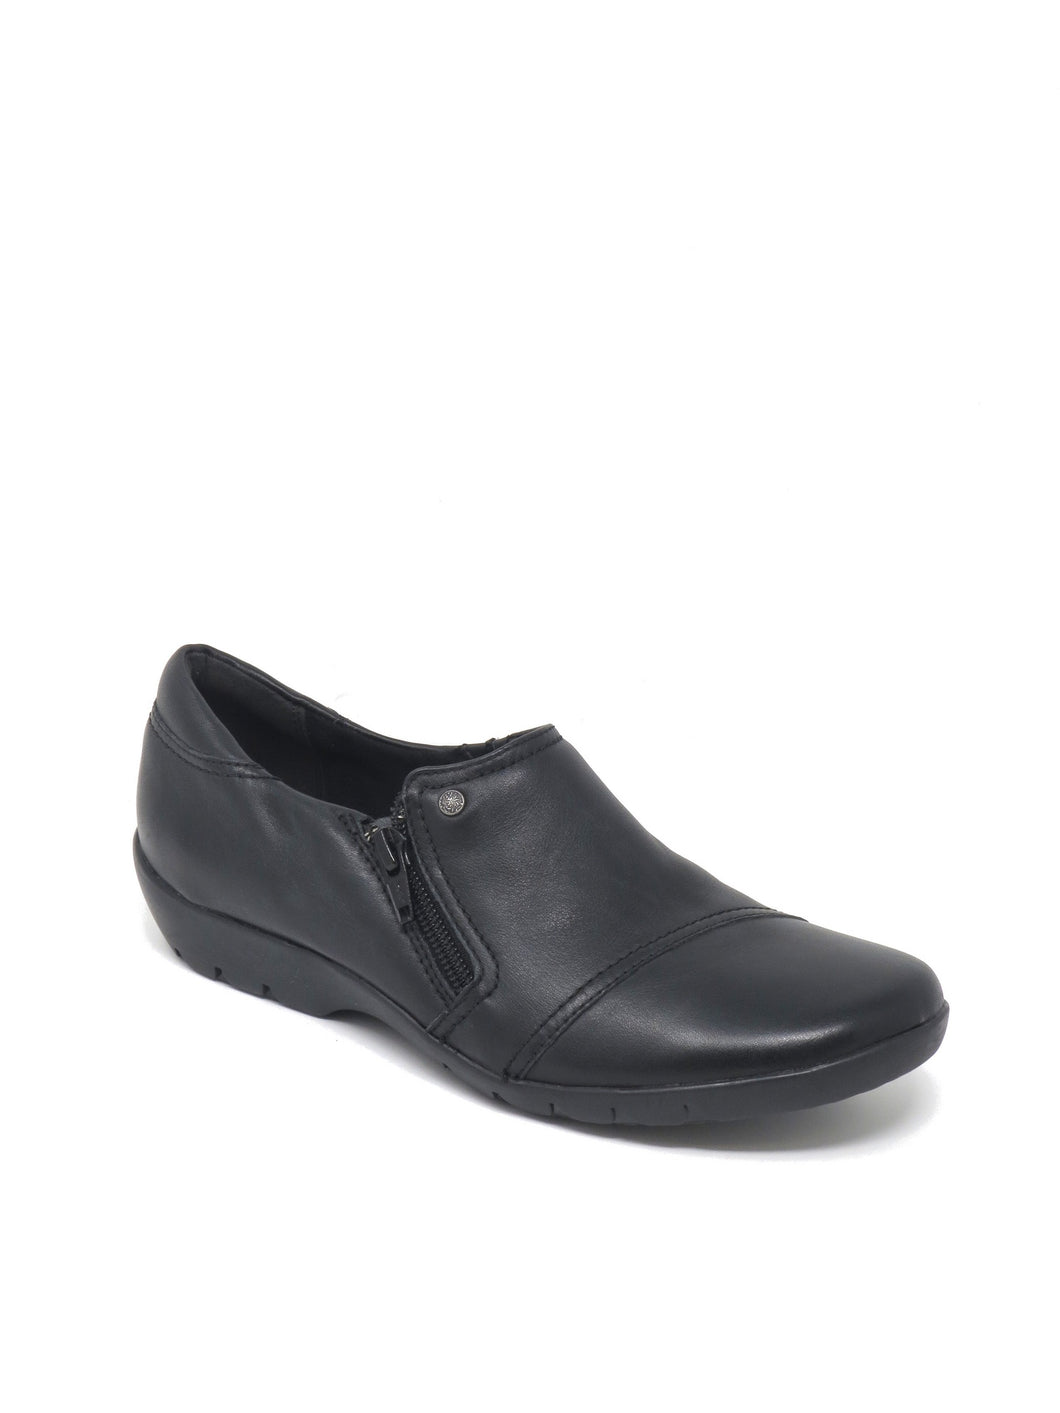 Clarks | 11560 | Ordell Baytown | Black